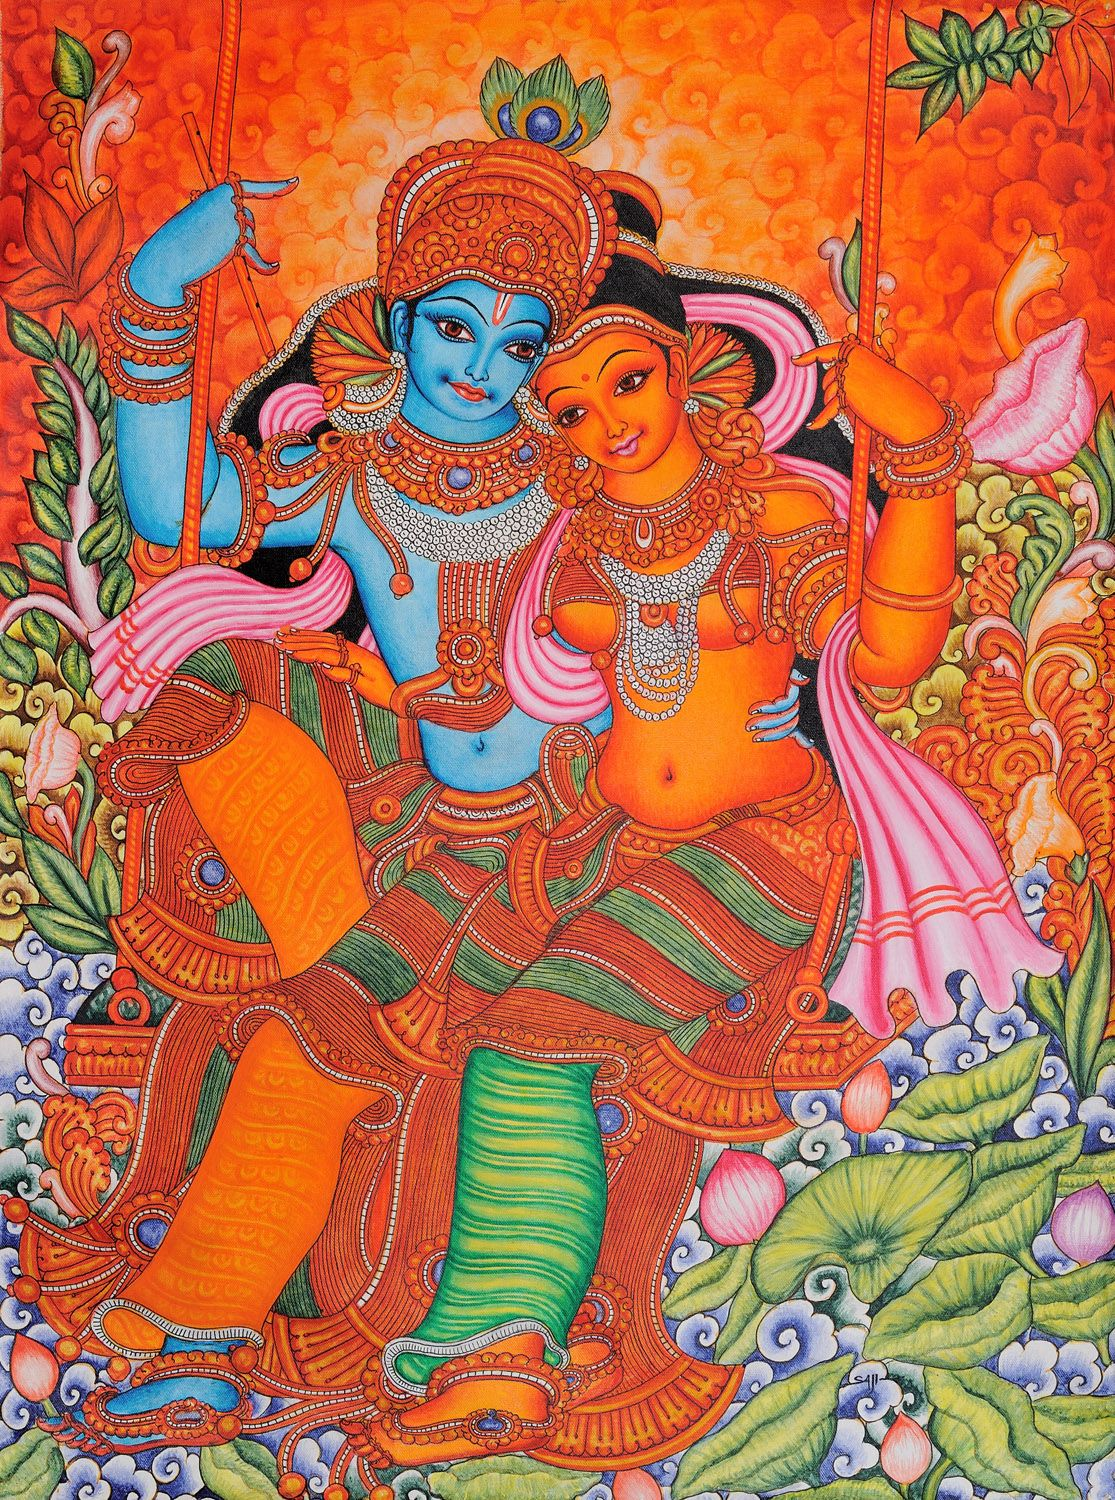 Radha and krishna on swing kerala folk style painting for Art of mural painting